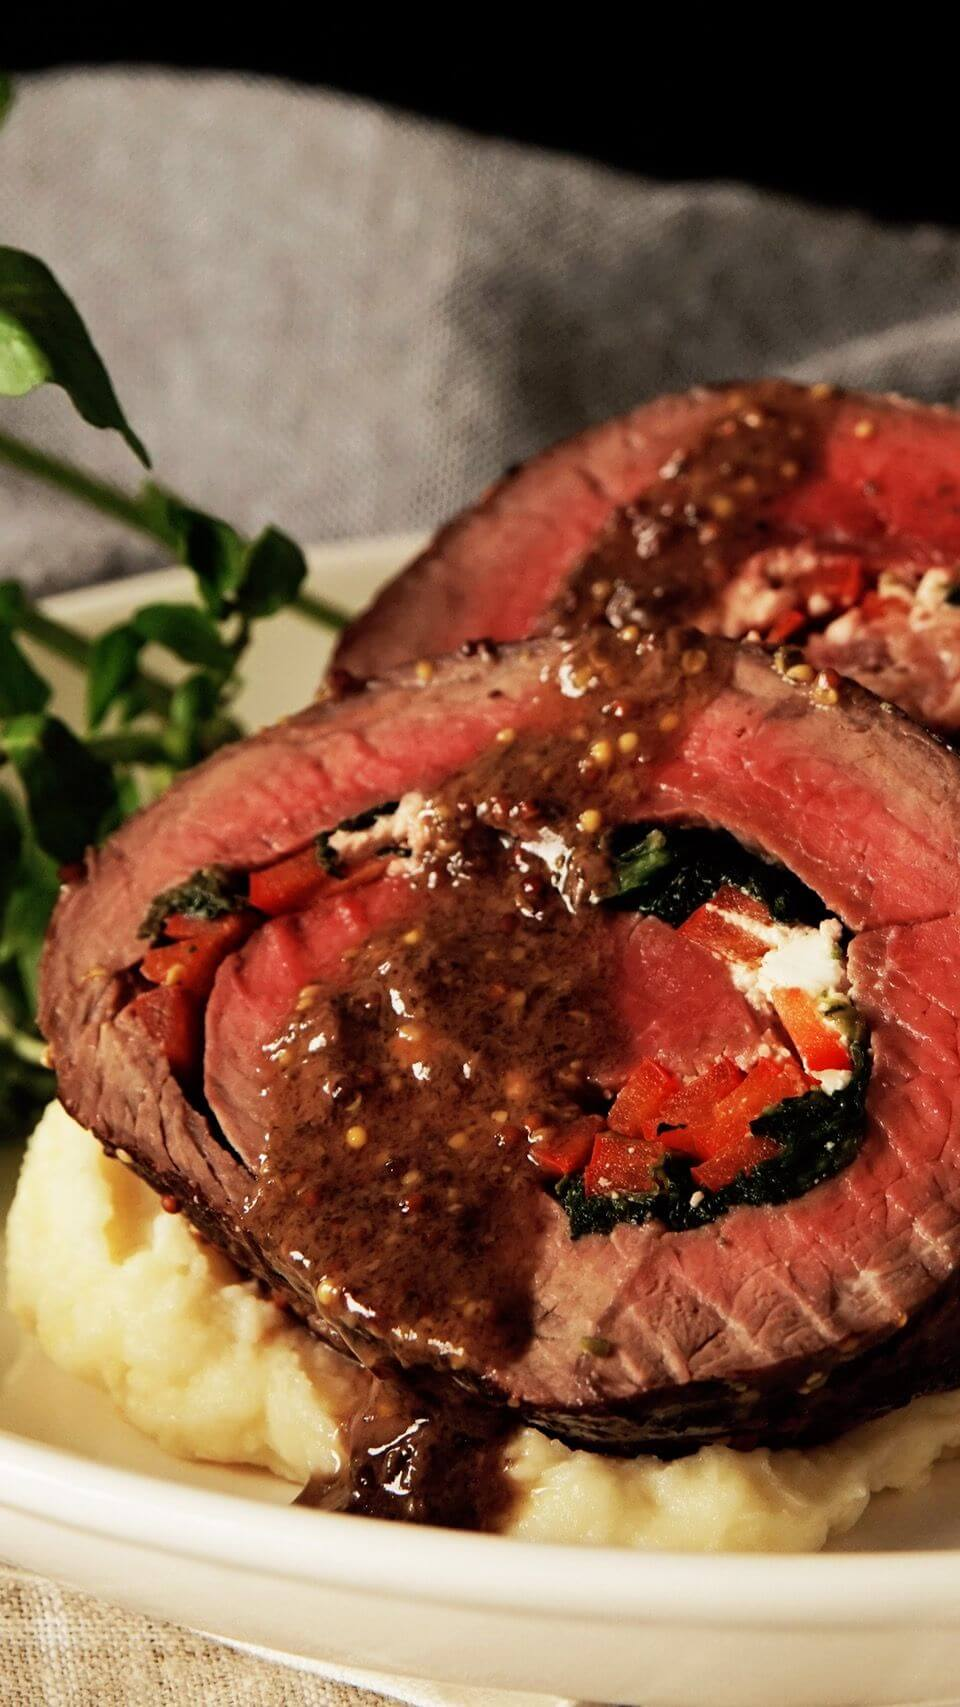 18.Rolled Roast Beef with Herb Butter